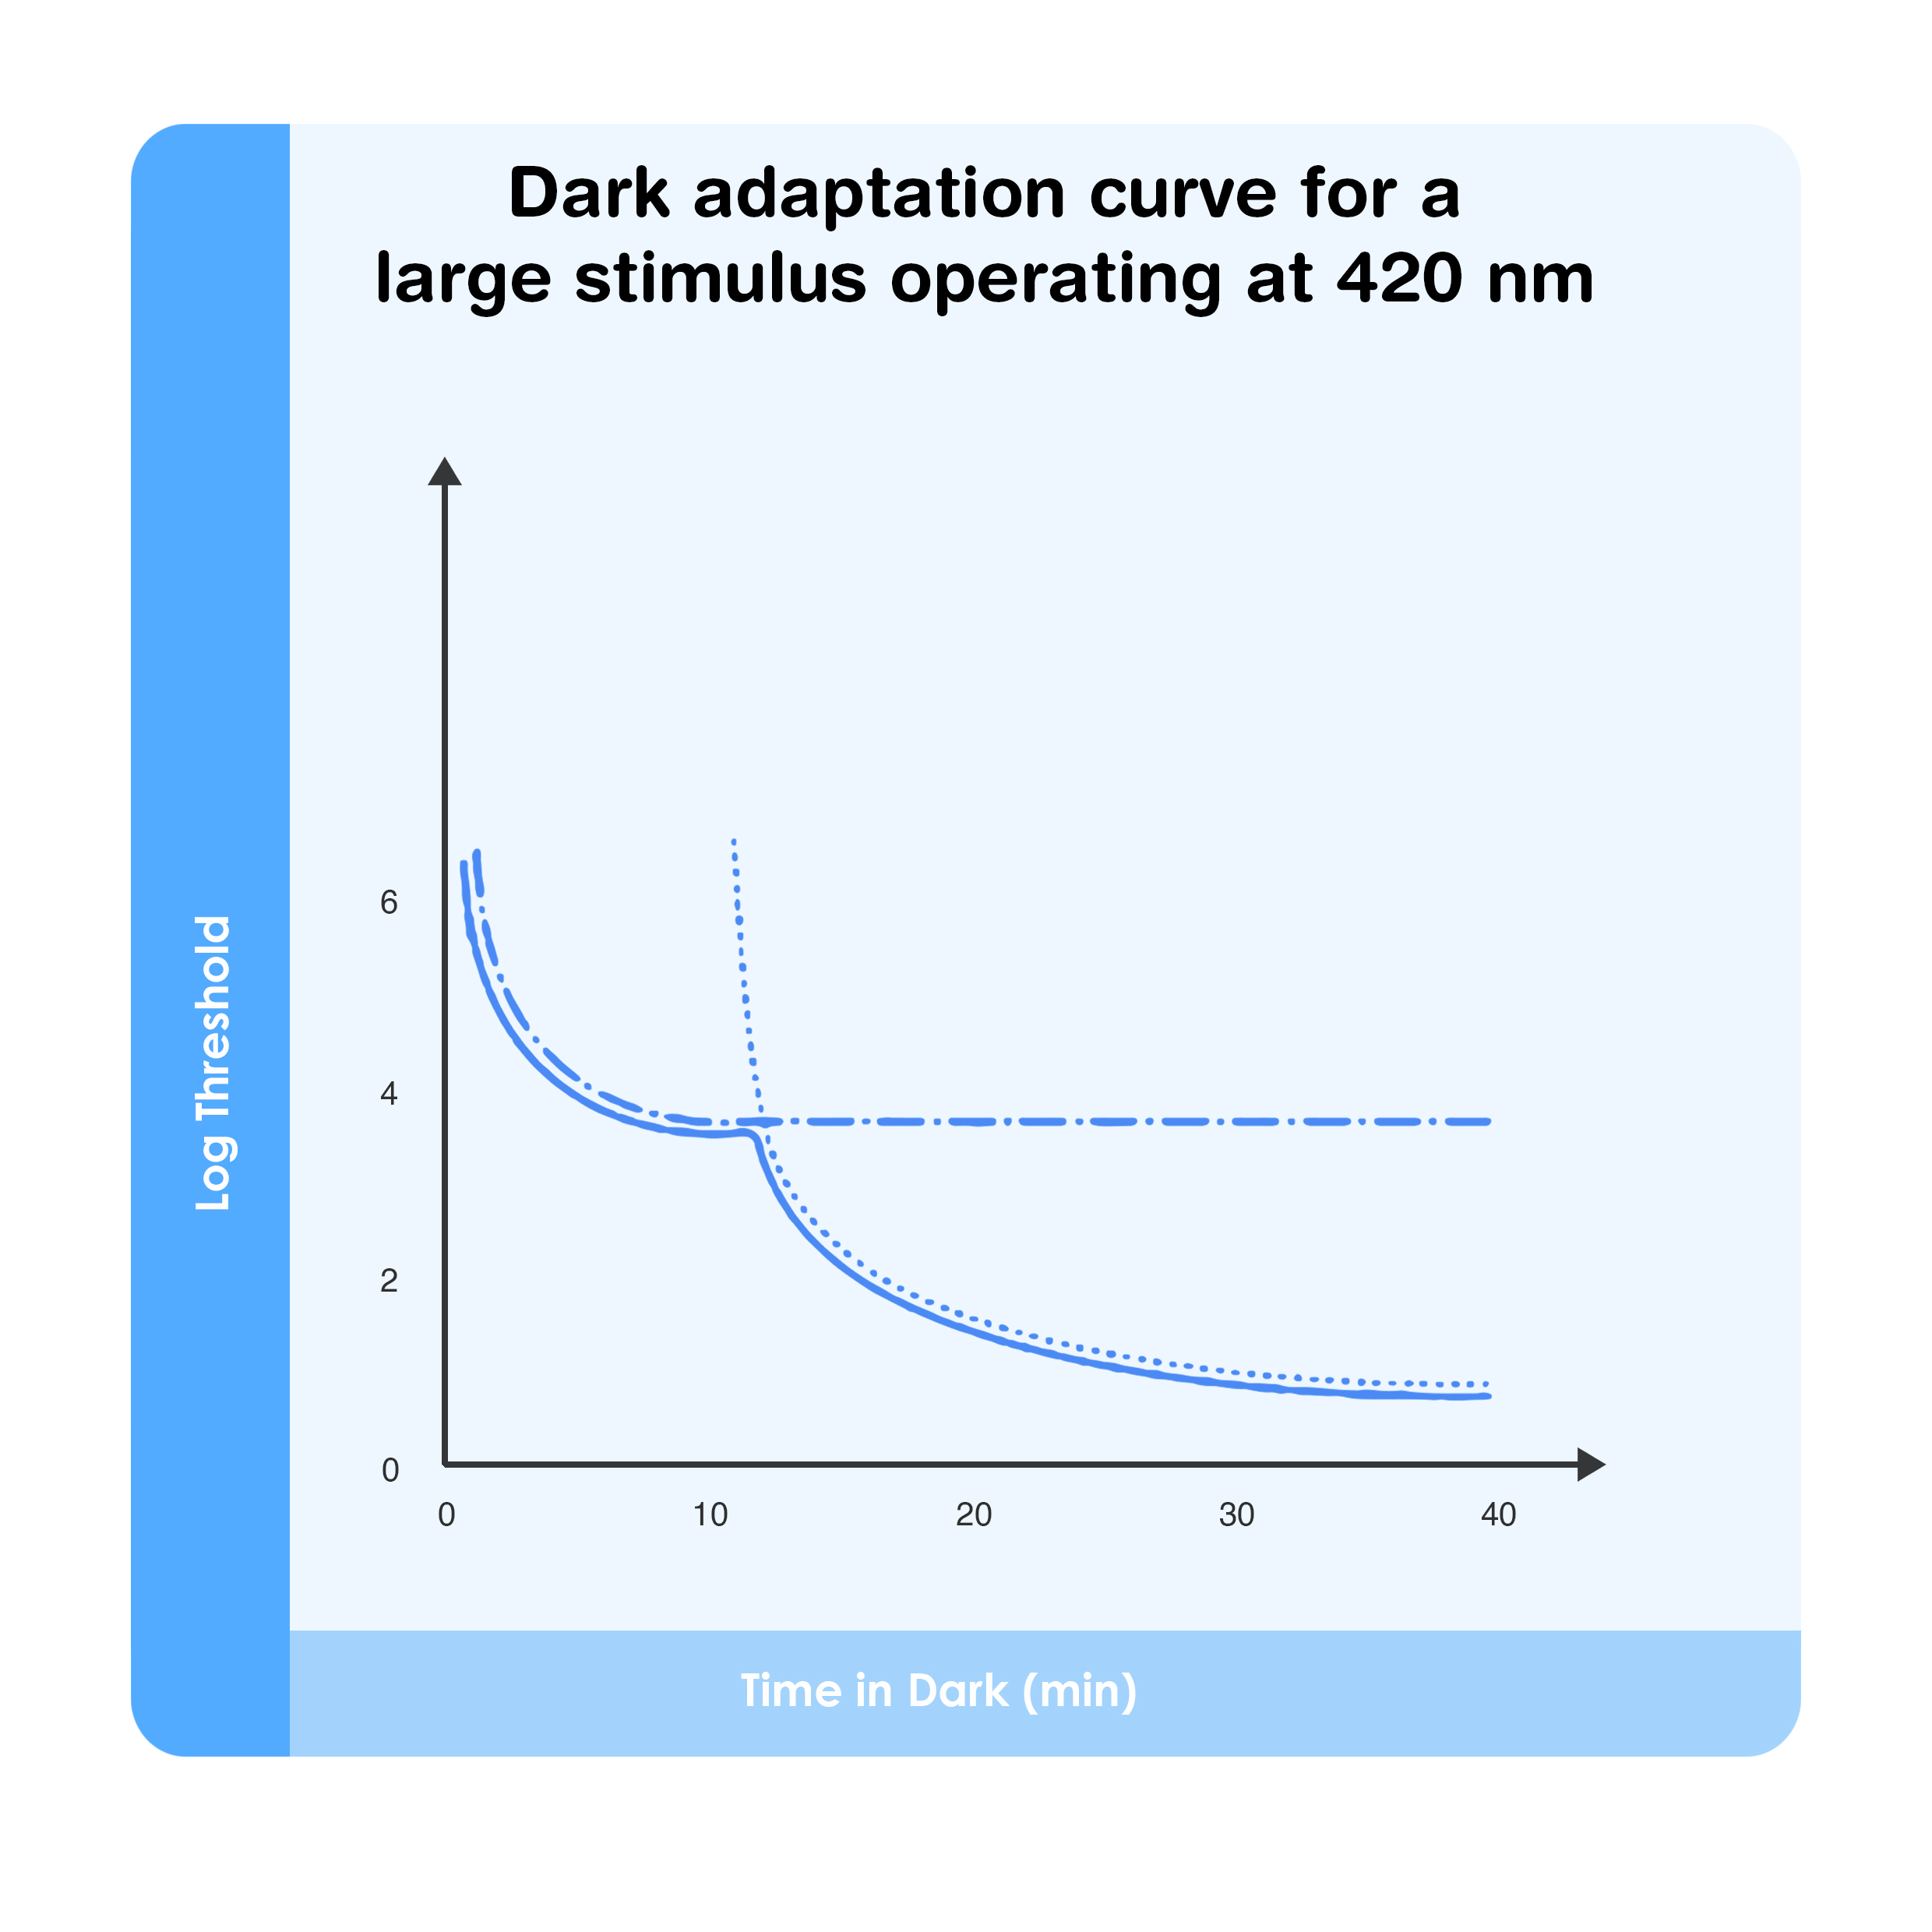 Dark adaptation curve for a large stimulus operating at 420 nm